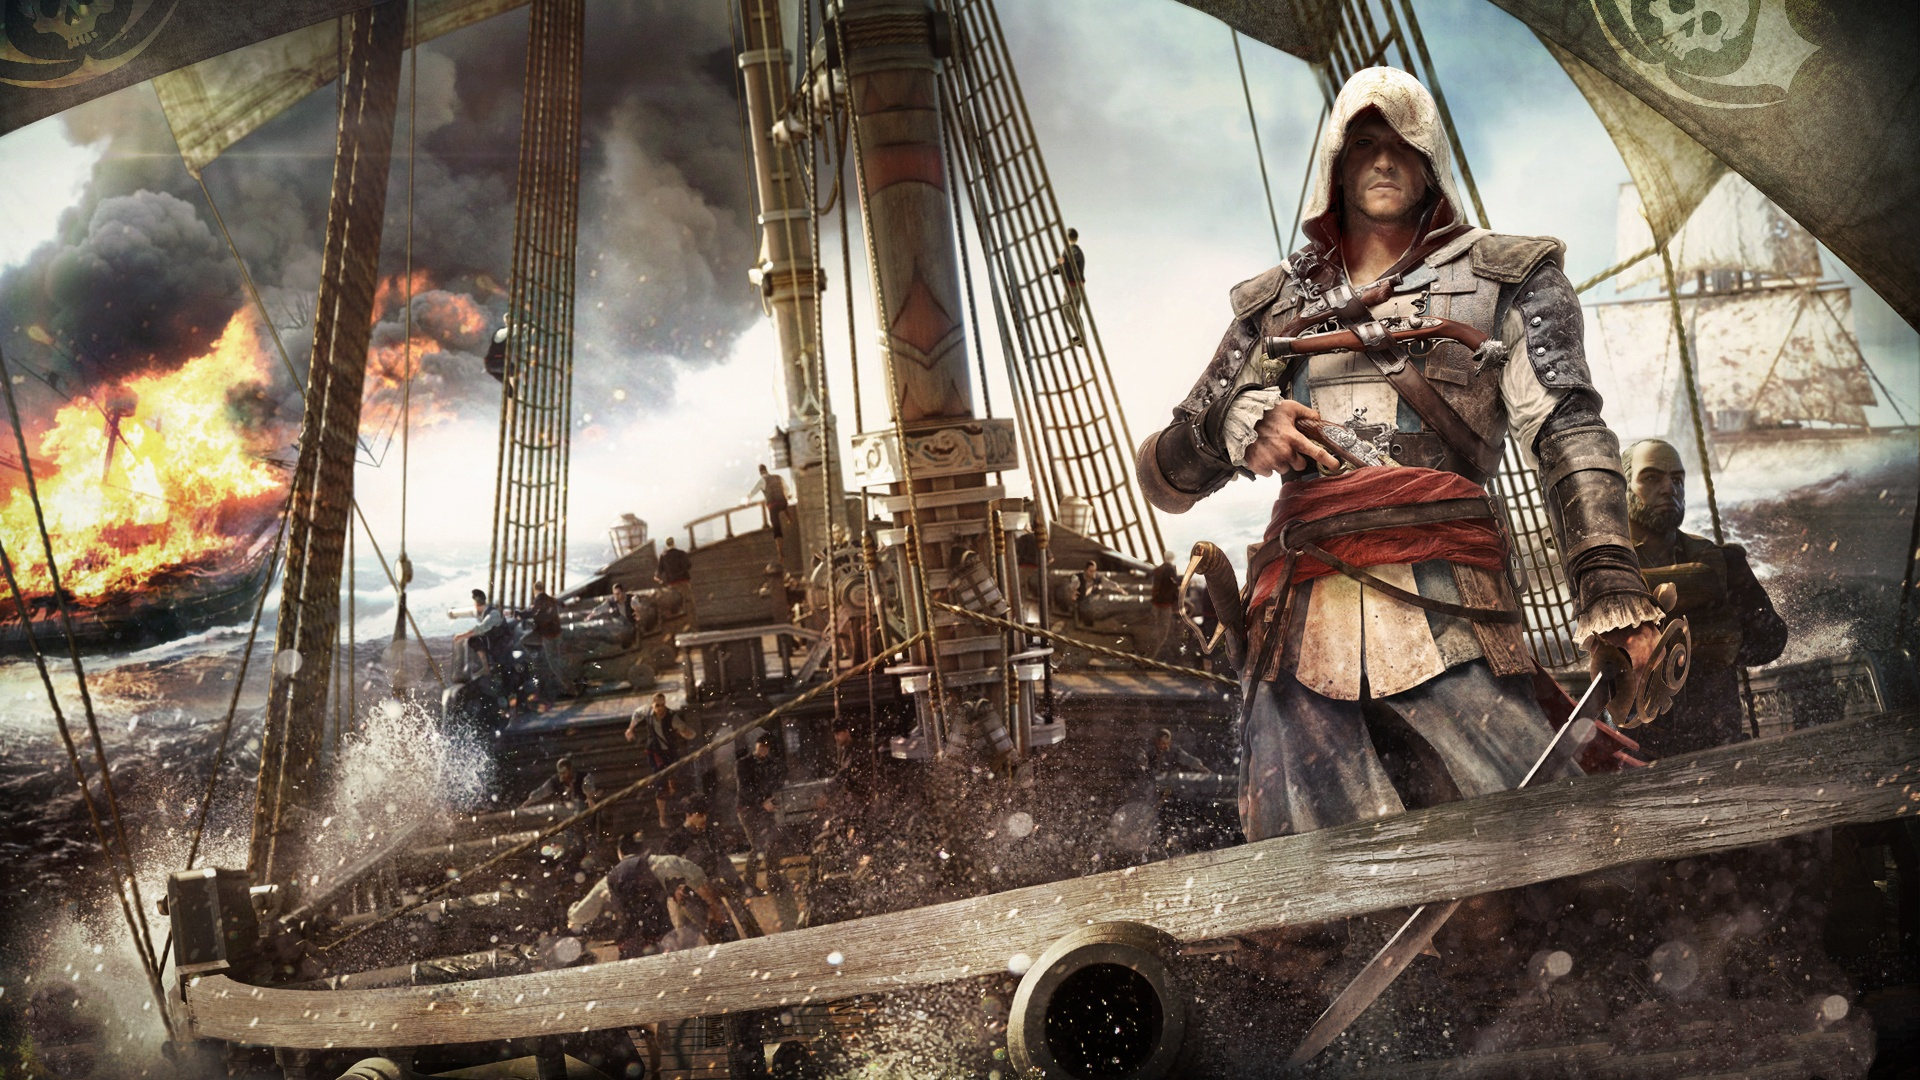 Wallpaper assassins creed black flag background full hd pic download voltagebd Image collections